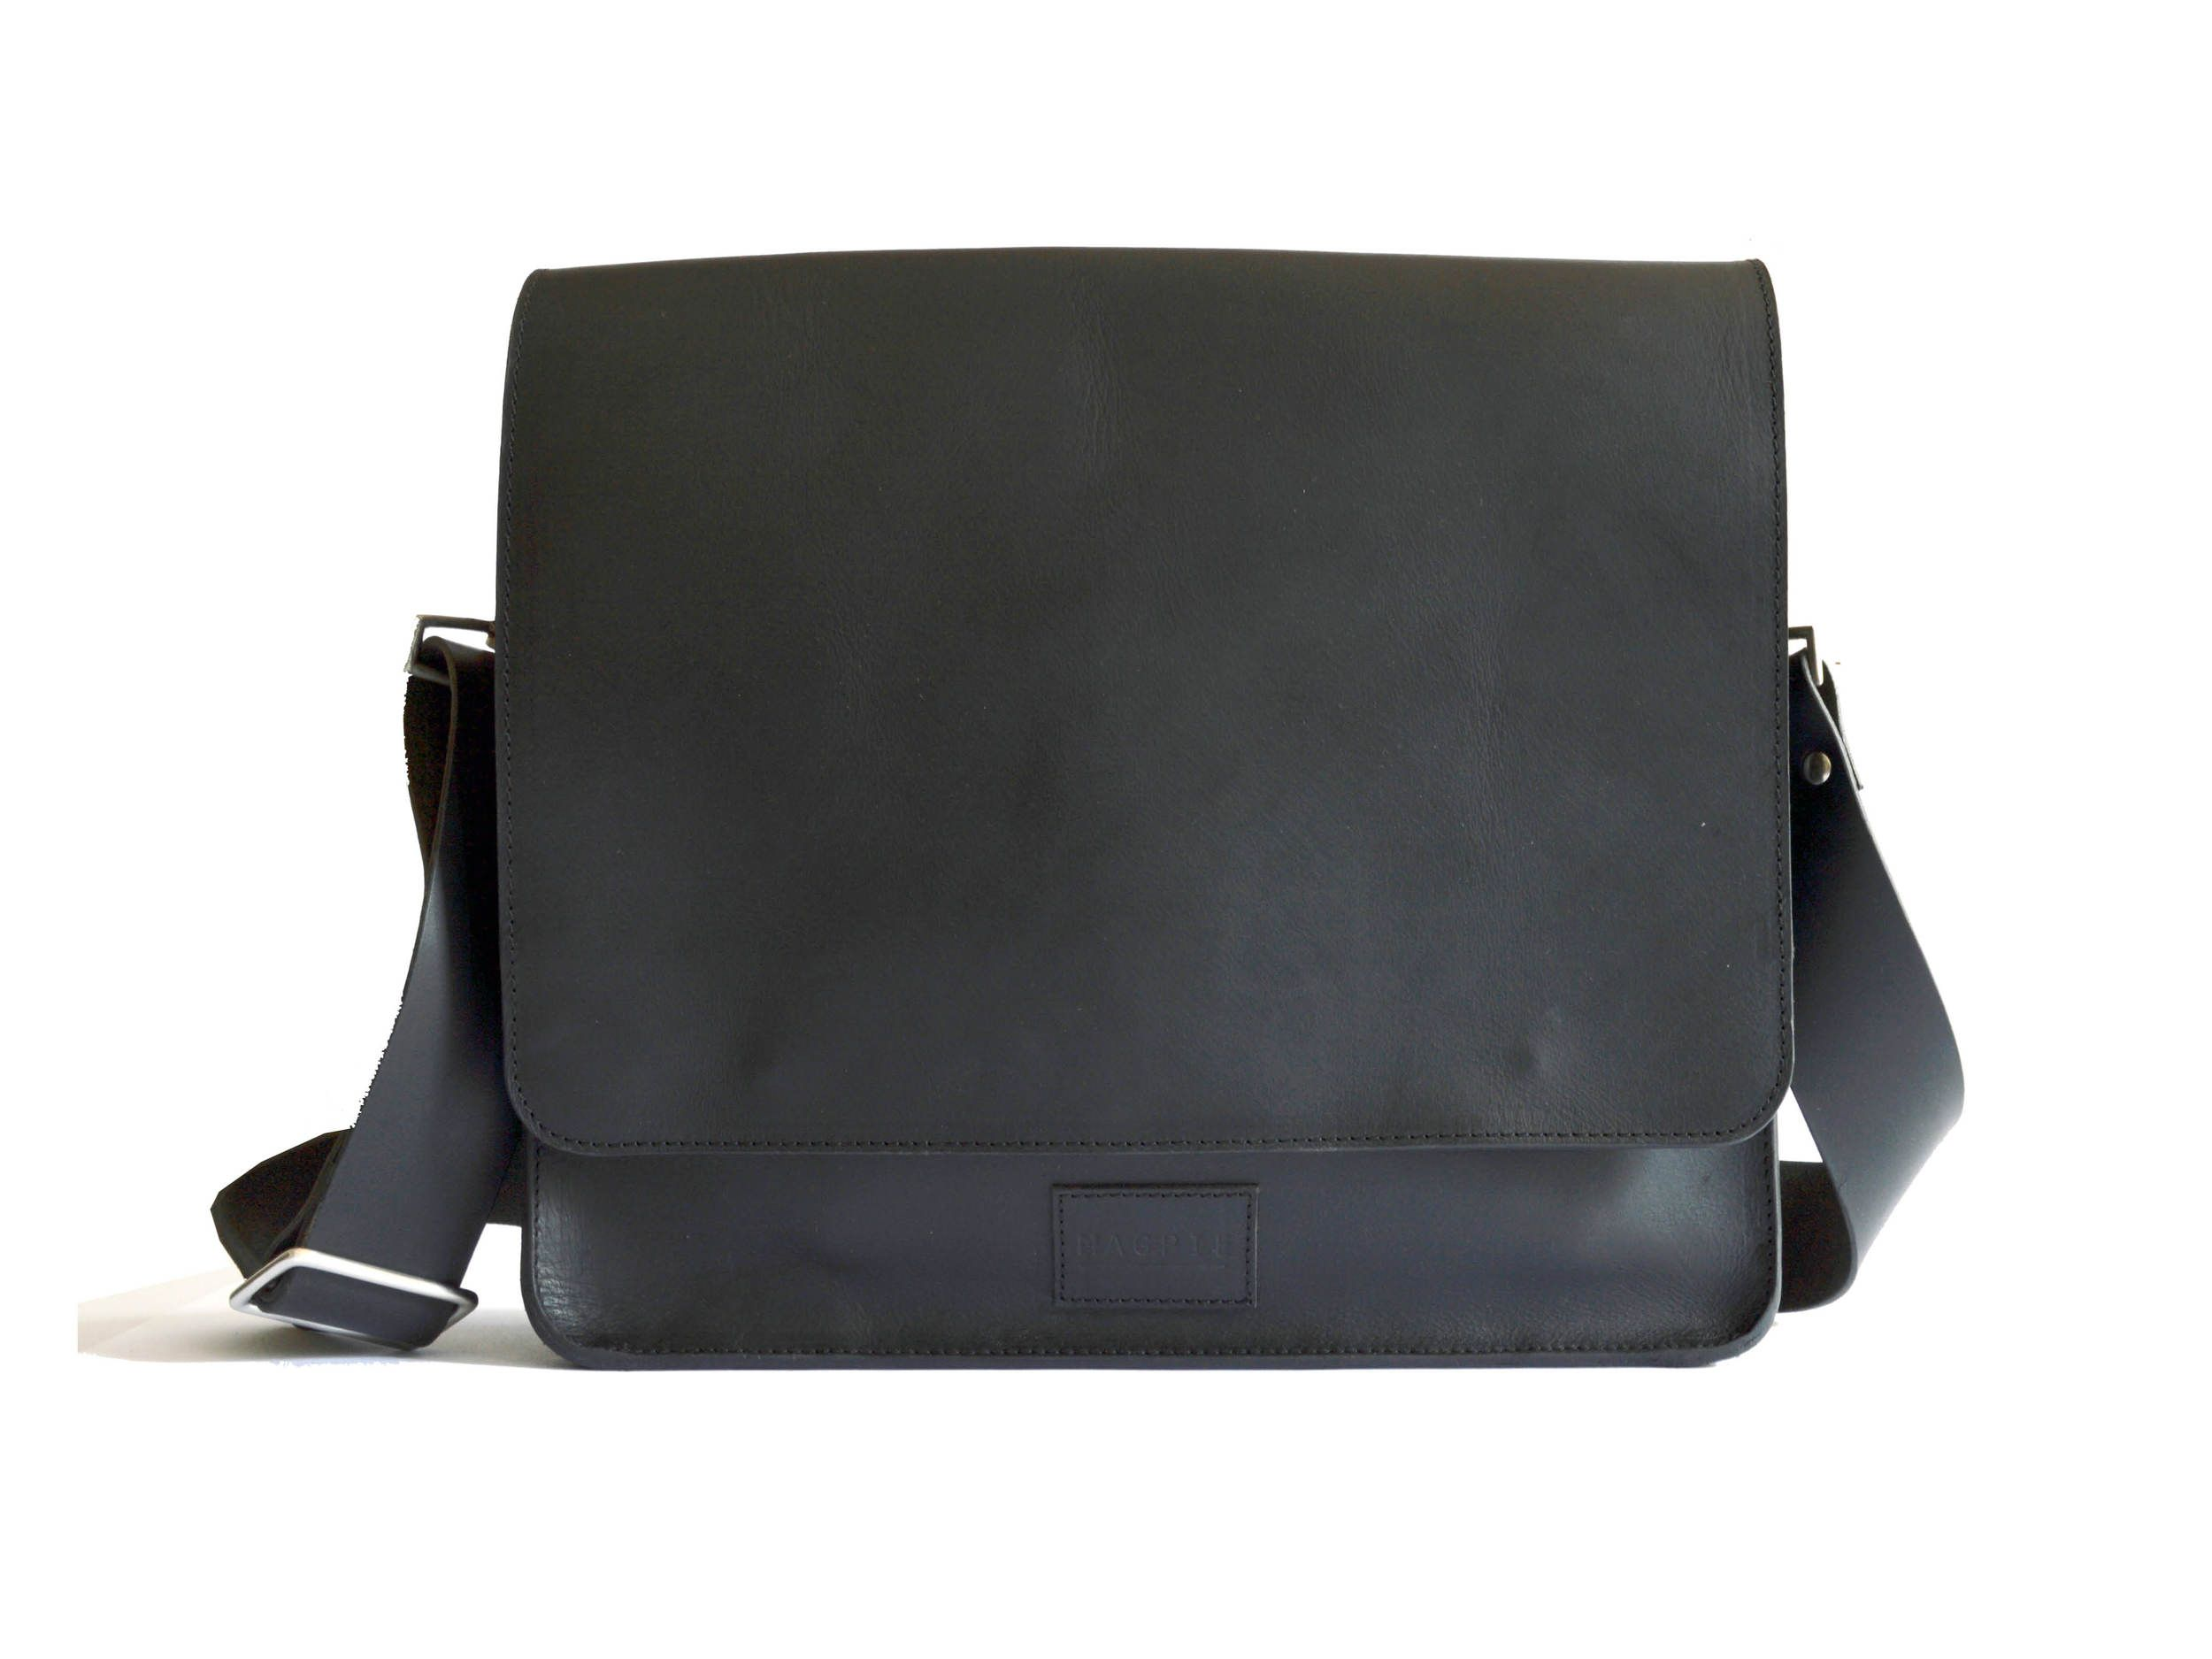 """This sleek and high quality all leather messenger bag is perfect for the boardroom or just looking your best around town. Besides the ample space for a laptop in the main pocket, the Sylvester comes with a zipped pocket on the back perfect for a wallet, as well as a small side pocket for easy access to small items like a debit or metro card.    Overall Dimensions: 13""""L x 3.5""""W x 11.5""""H (2"""" wide strap)"""